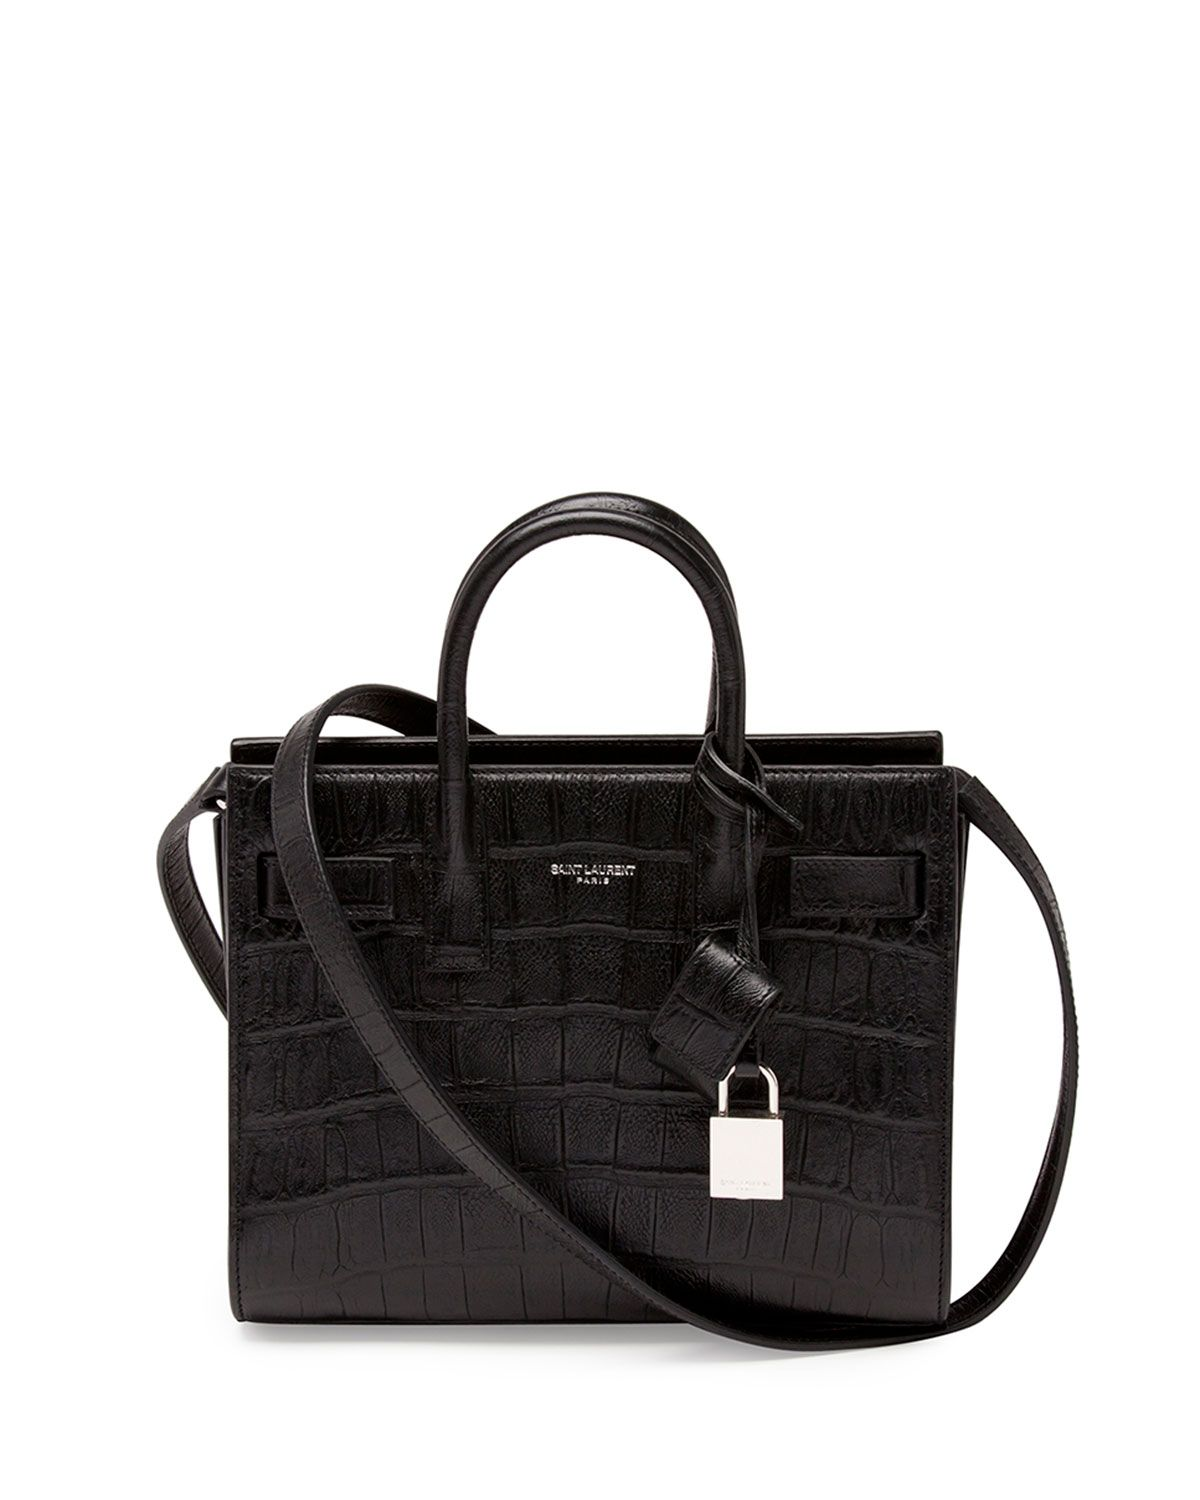 Yves Saint Laurent Sac de Jour Mini Satchel Bag 8fe790a39bec4